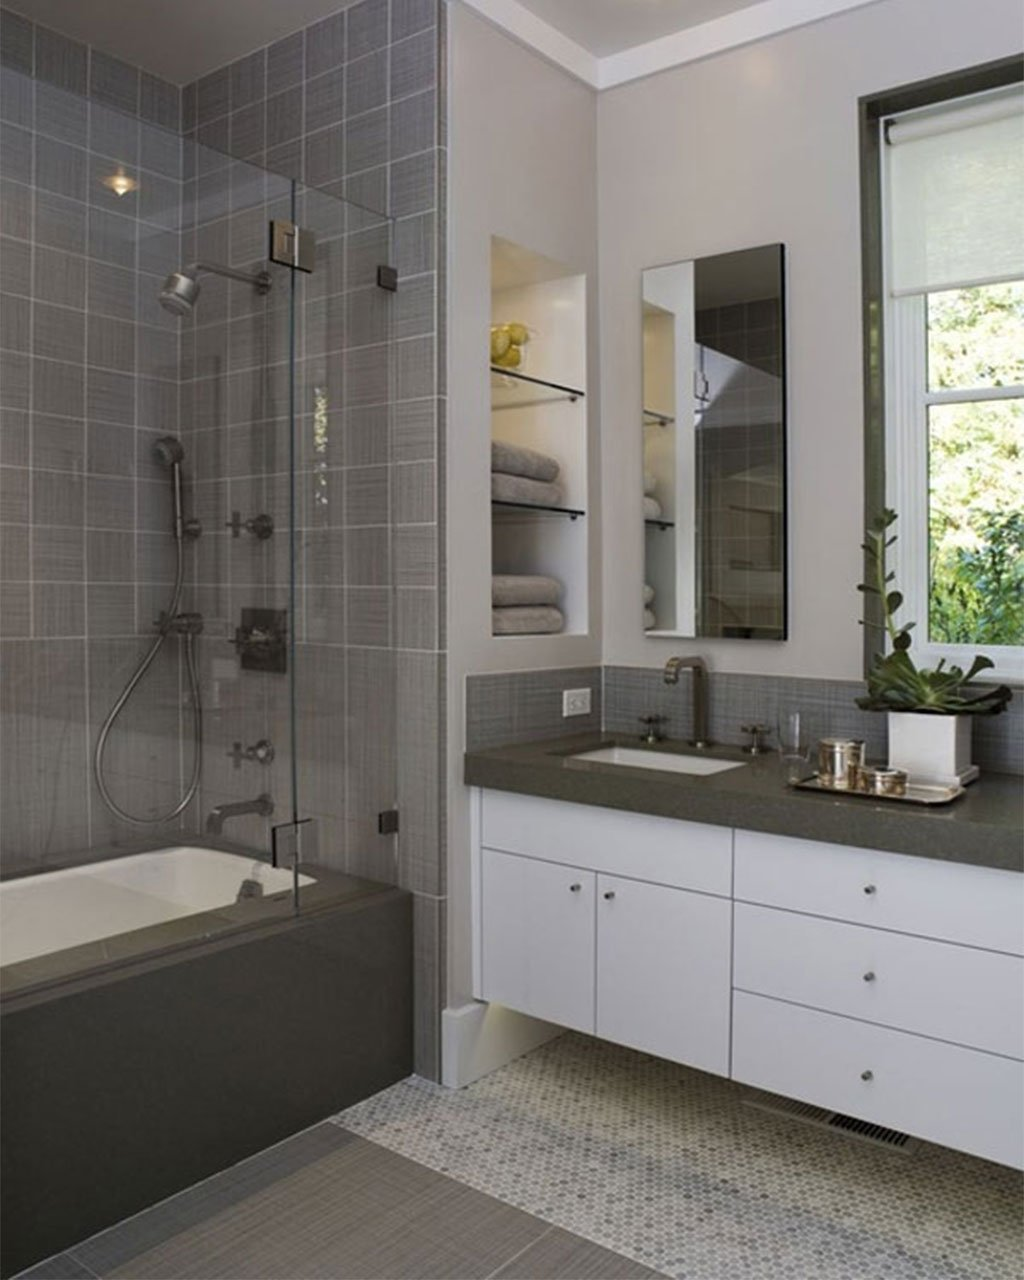 10 Perfect Small Bathroom Remodel Ideas On A Budget bathroom design remodeling ideas on budget decobizz 4 2020